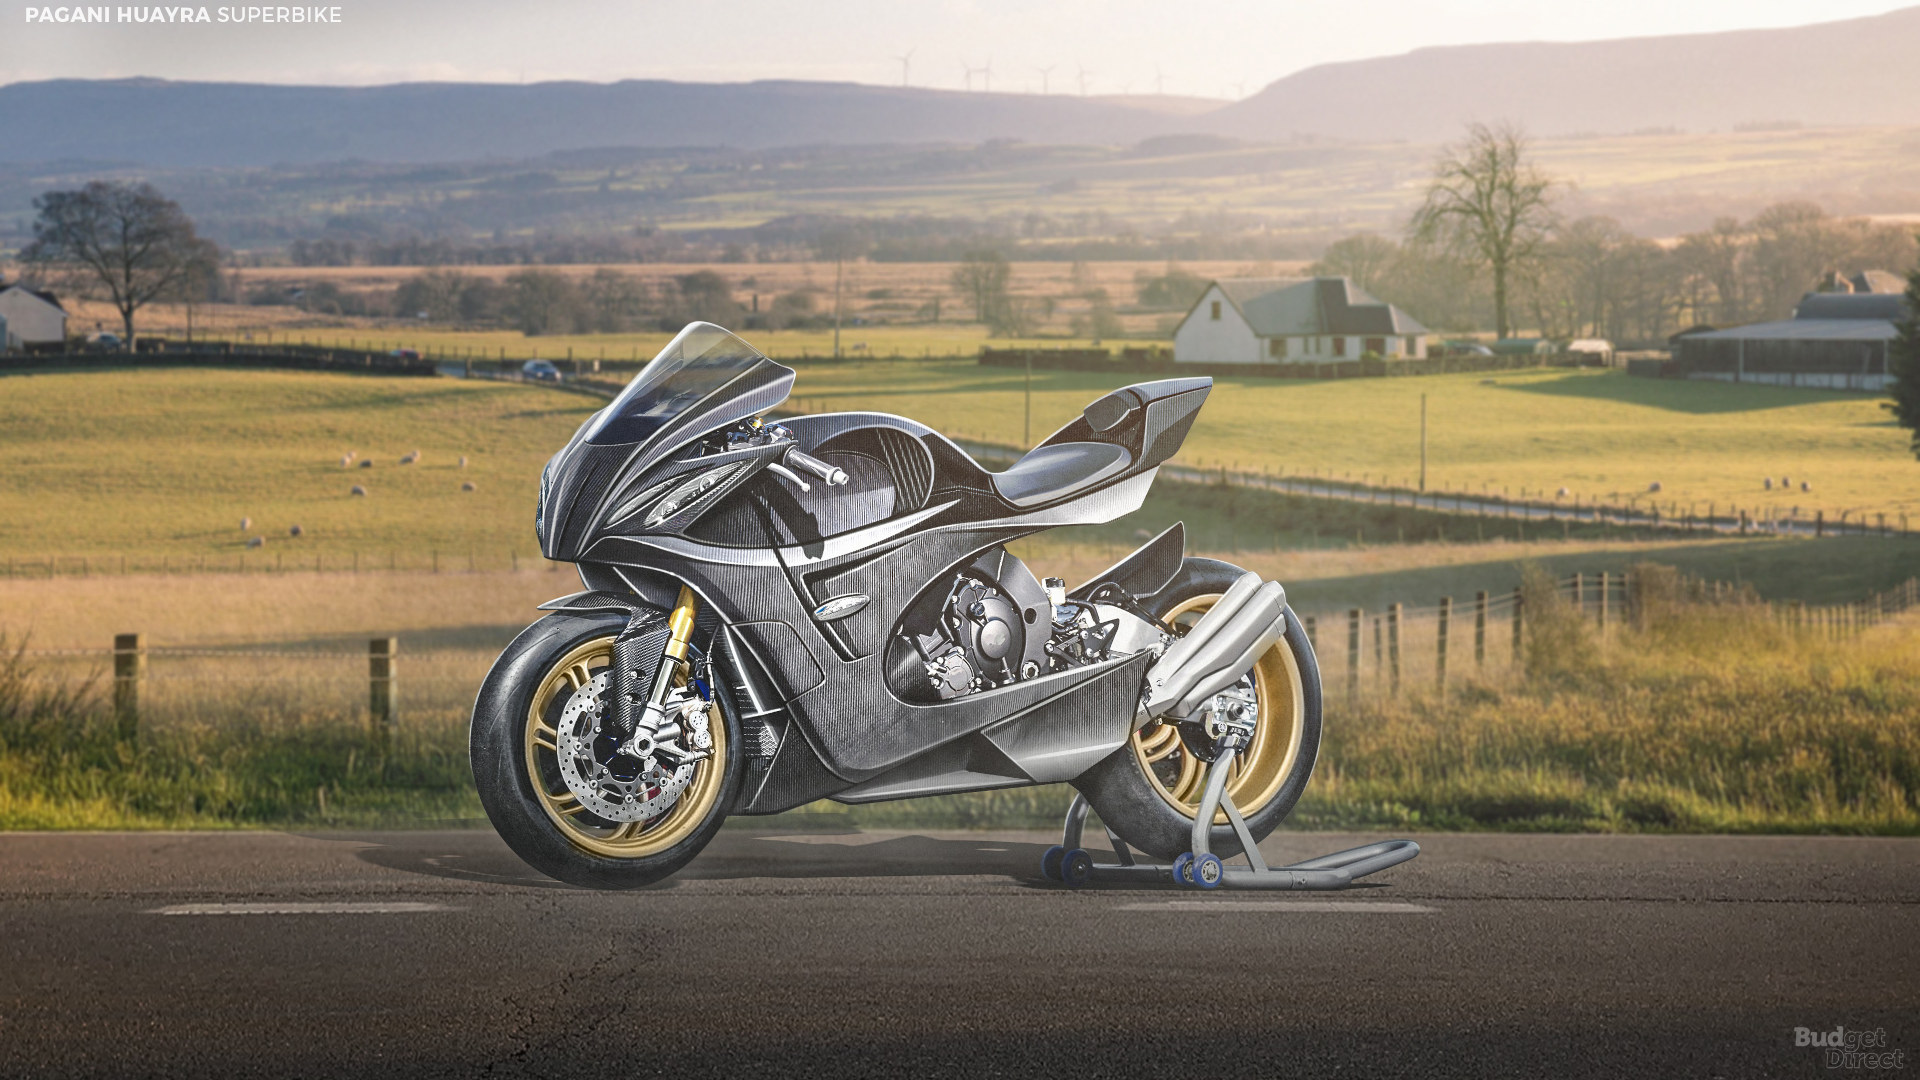 What if supercar brands made superbikes? How about a Pagani Huayra concept superbike?